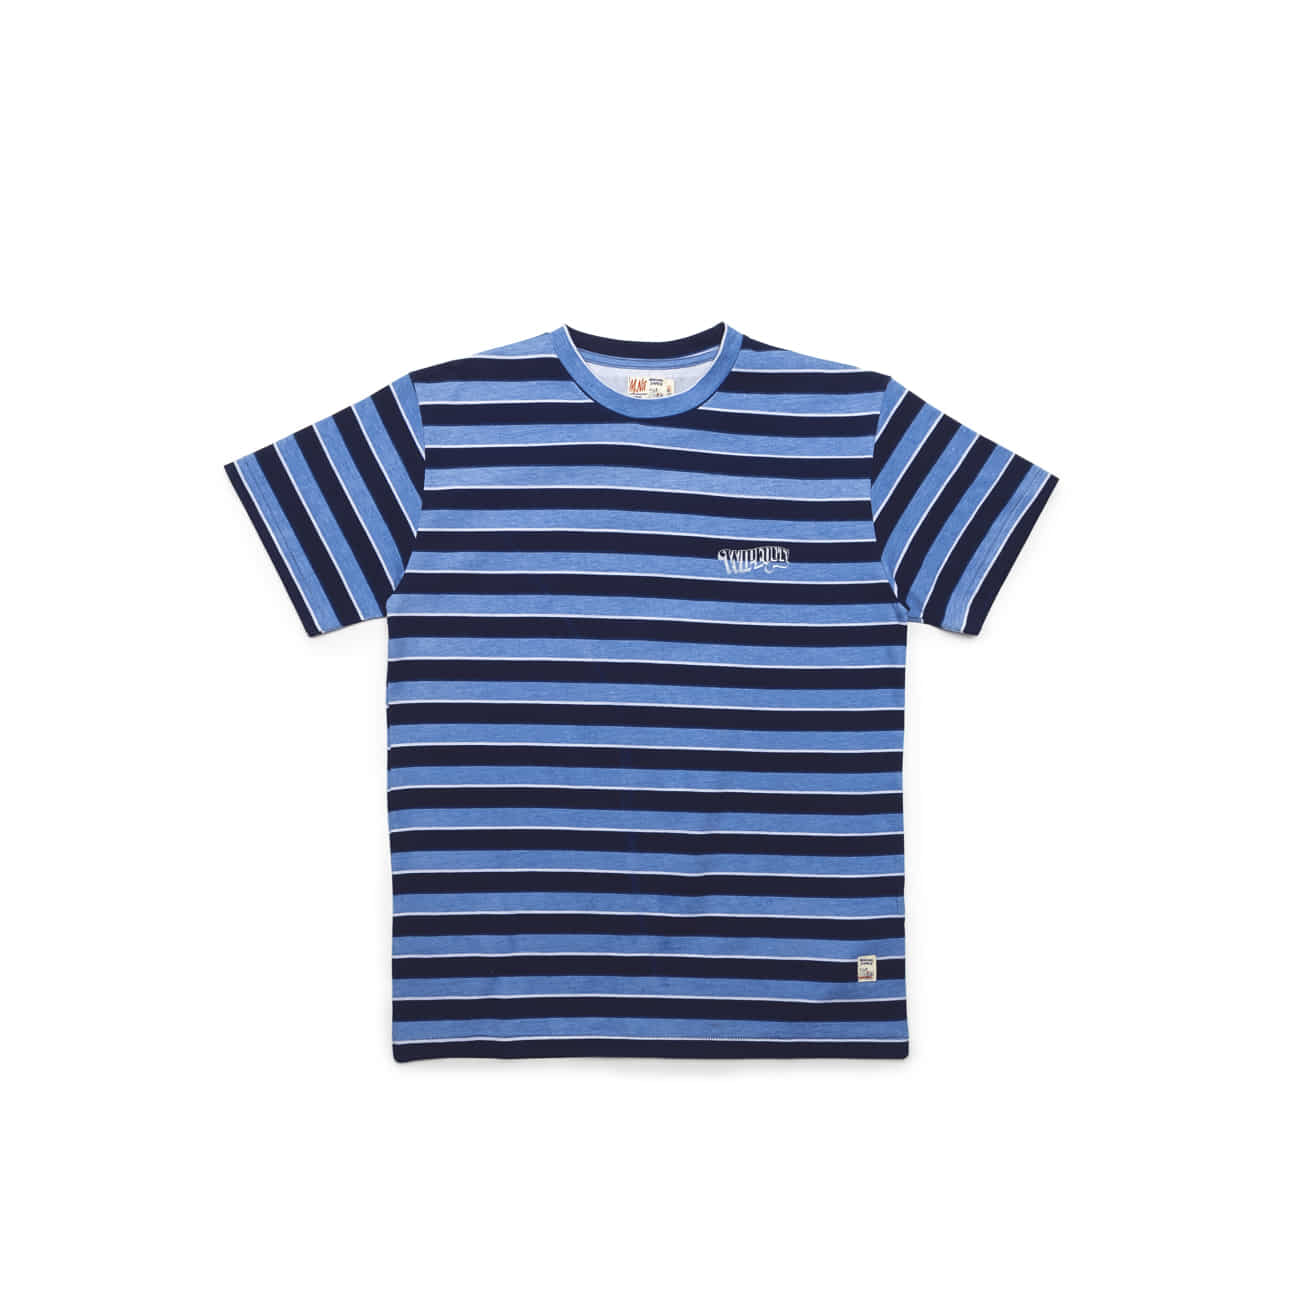 Wipeout Stripe Tee